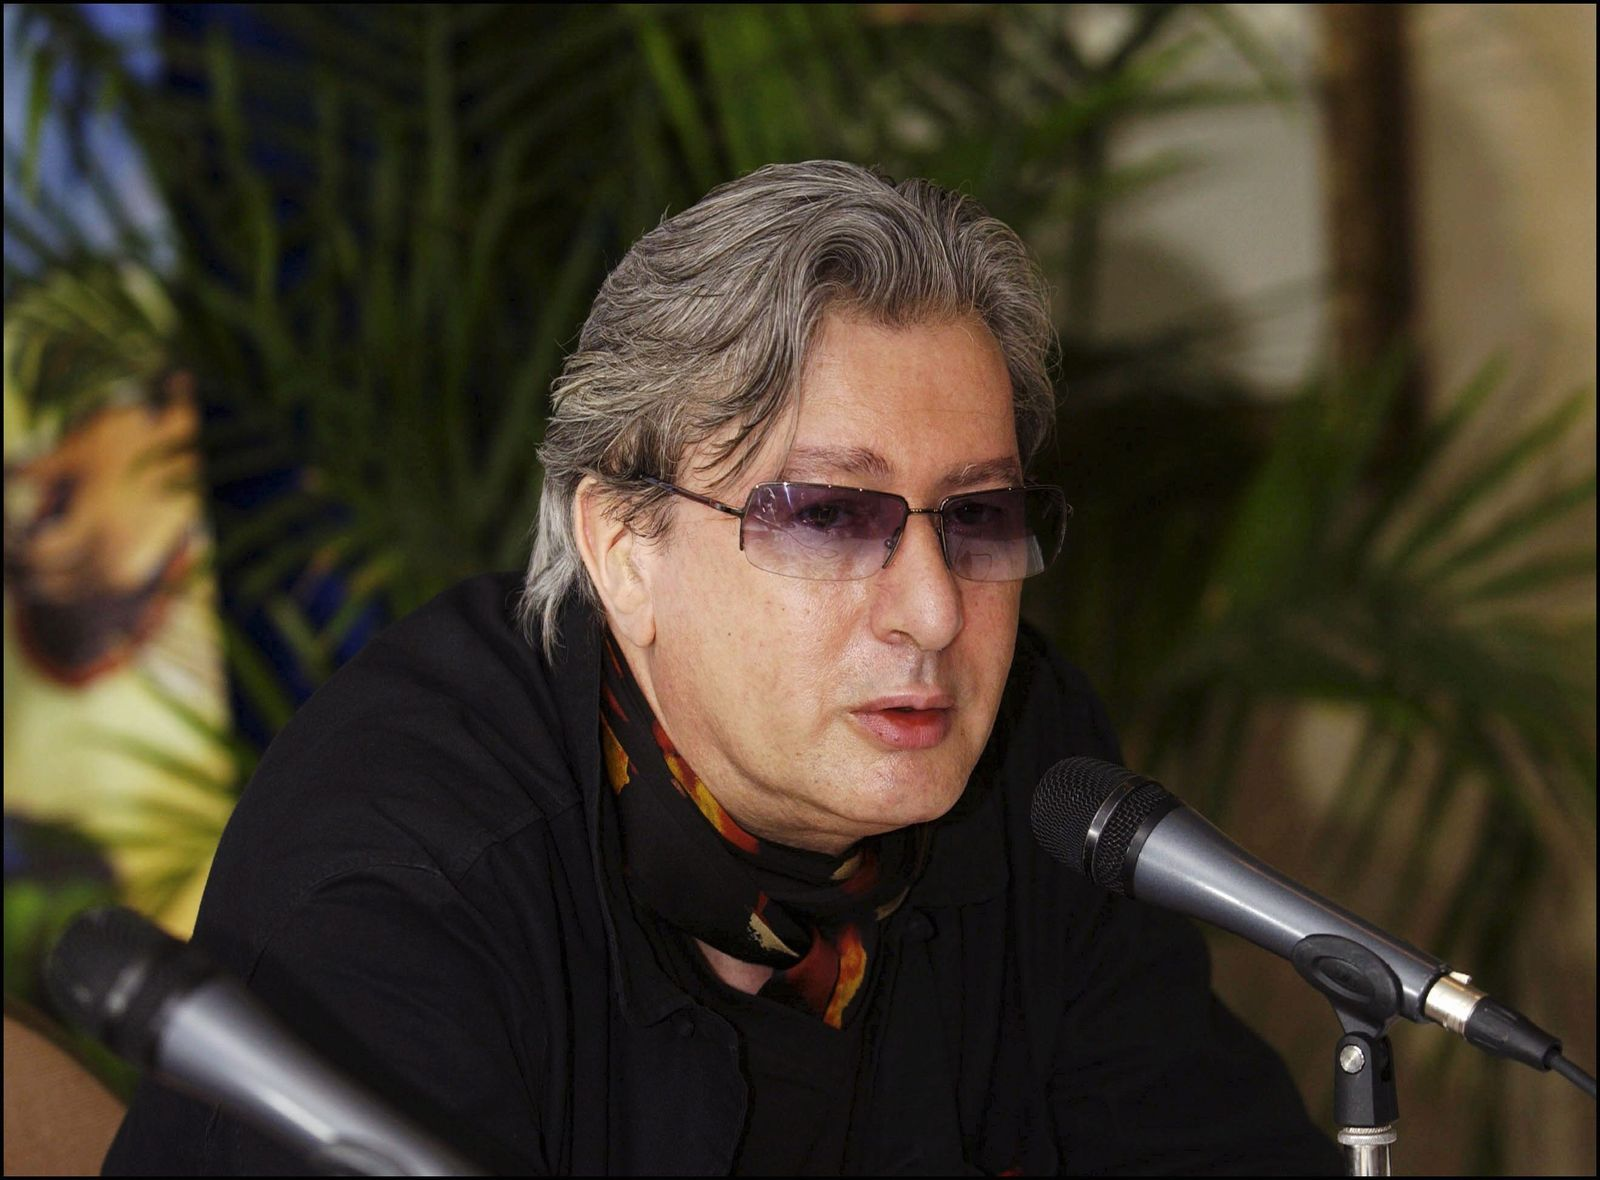 Le chanteur Alain Bashung | Photo : Getty Images